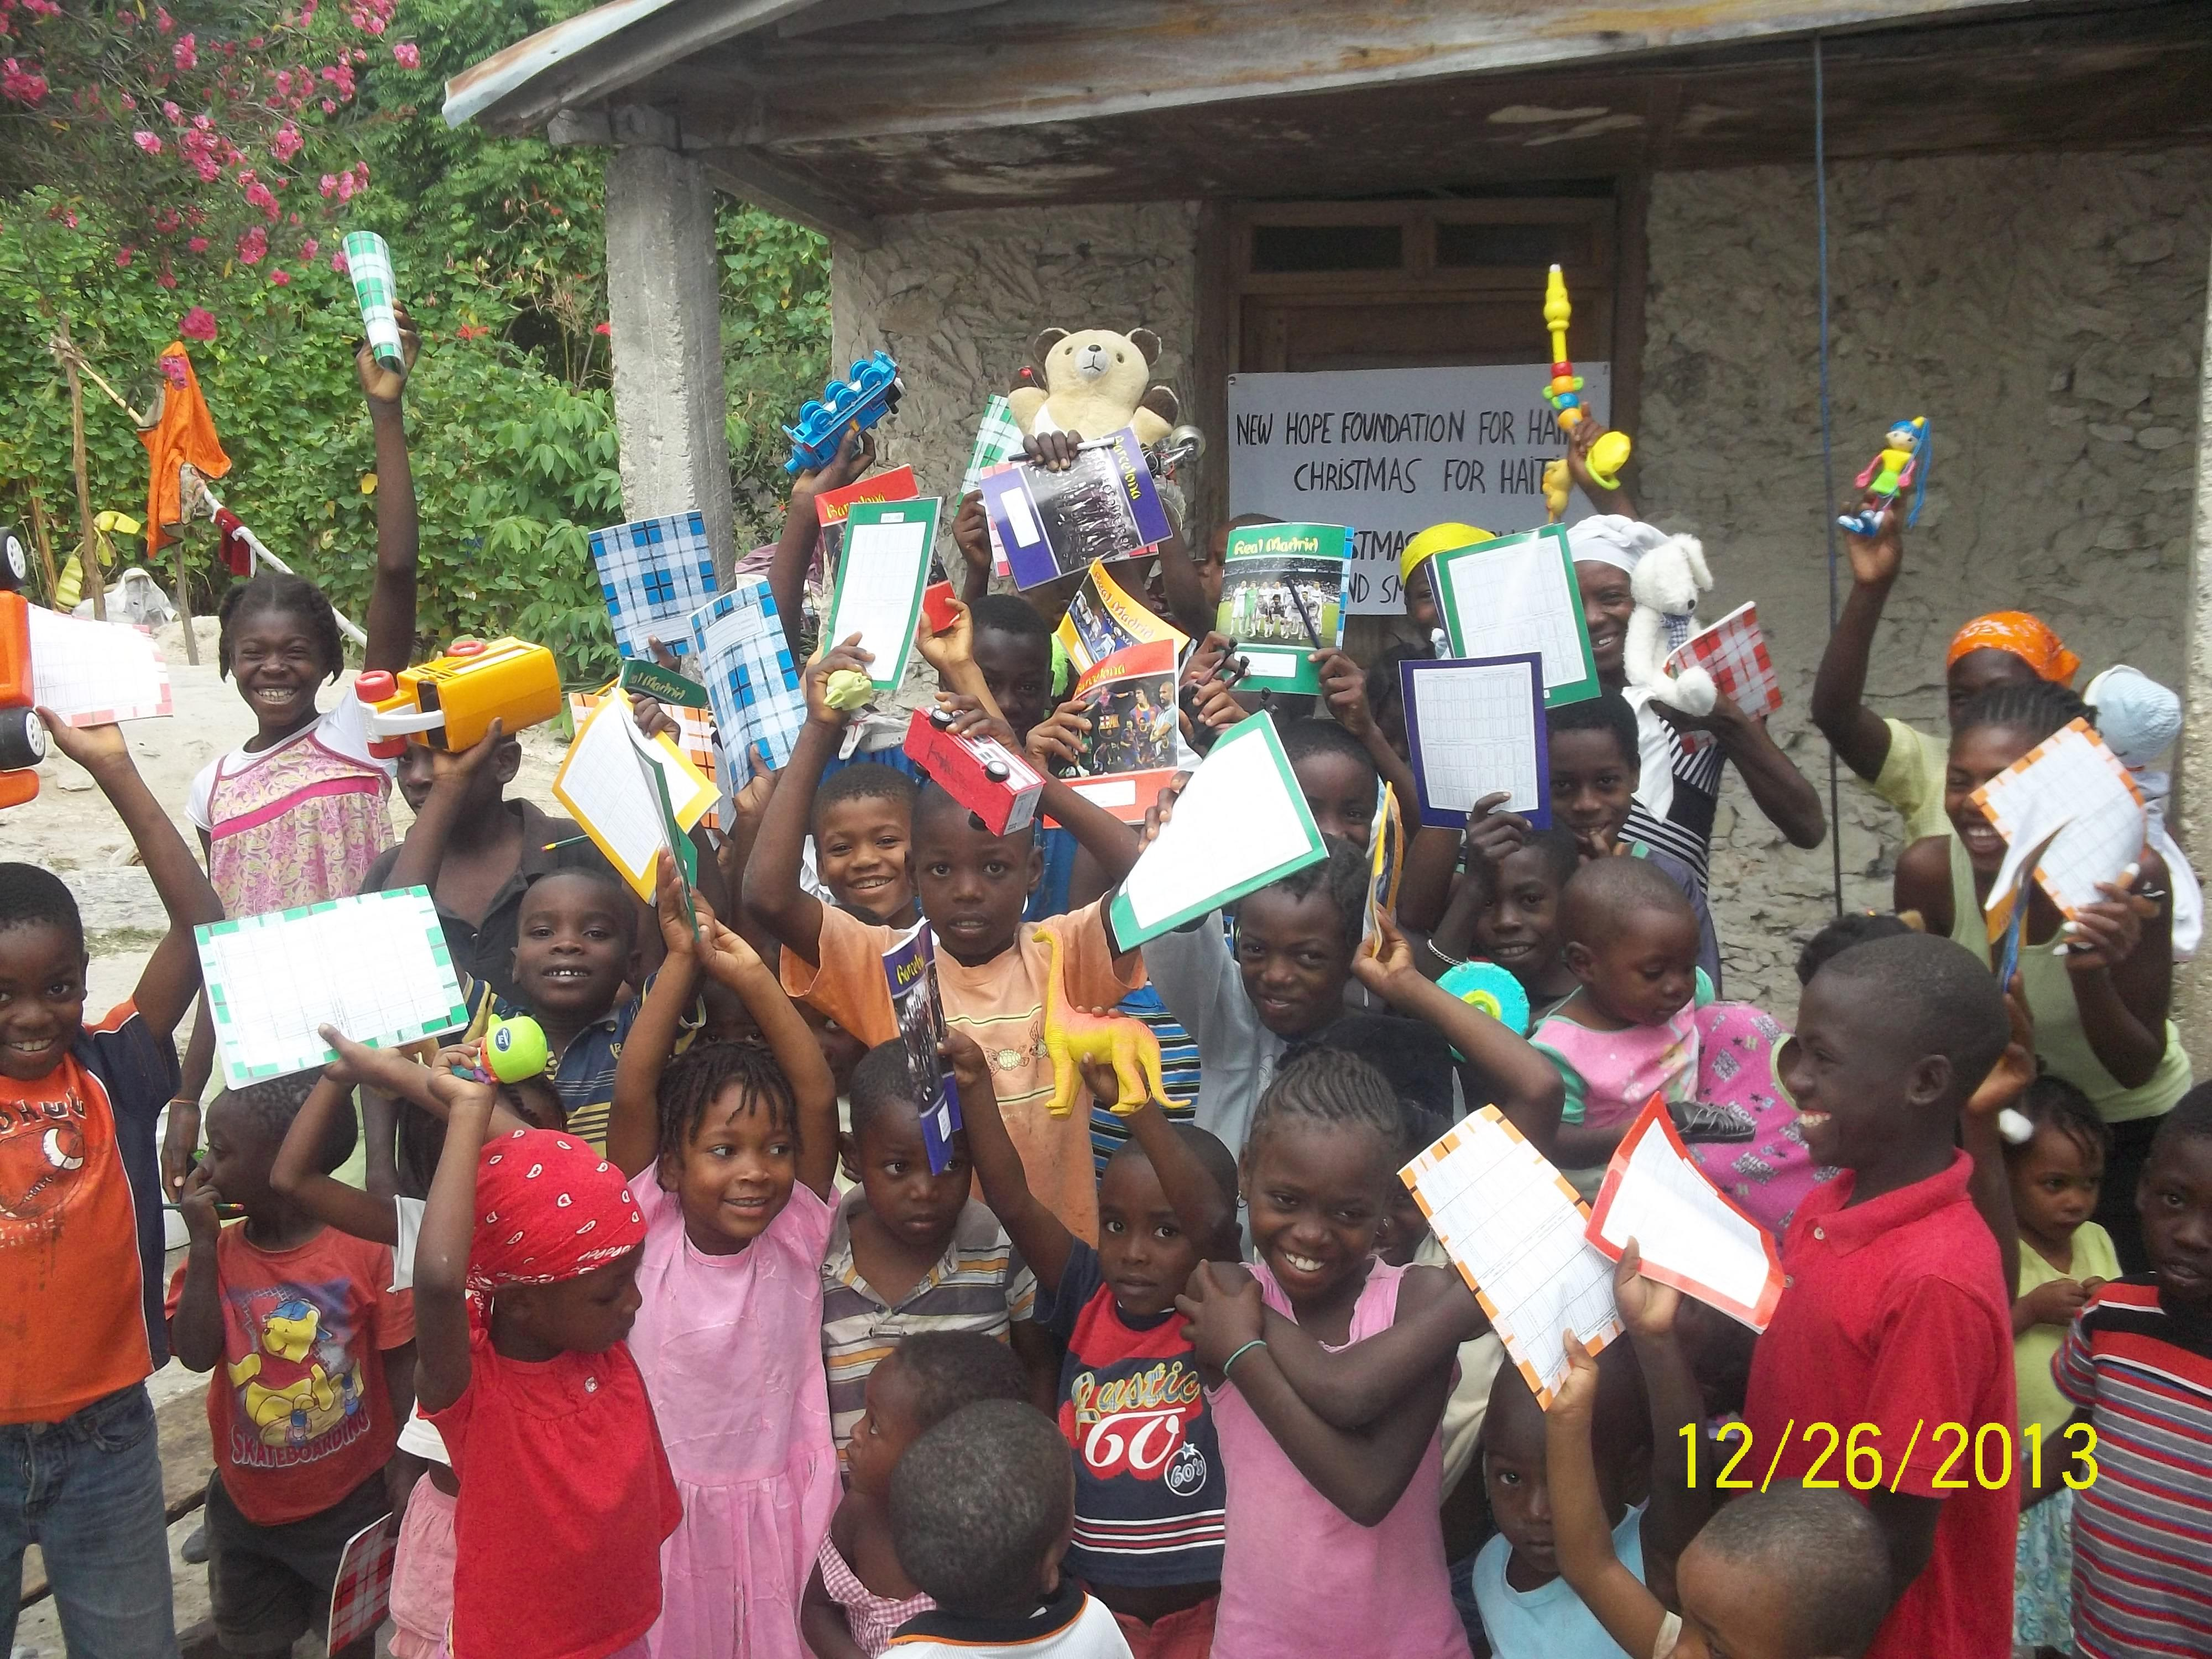 A 2013 photo from &quot;Christmas for Haiti.&quot;{&amp;nbsp;}<p></p>